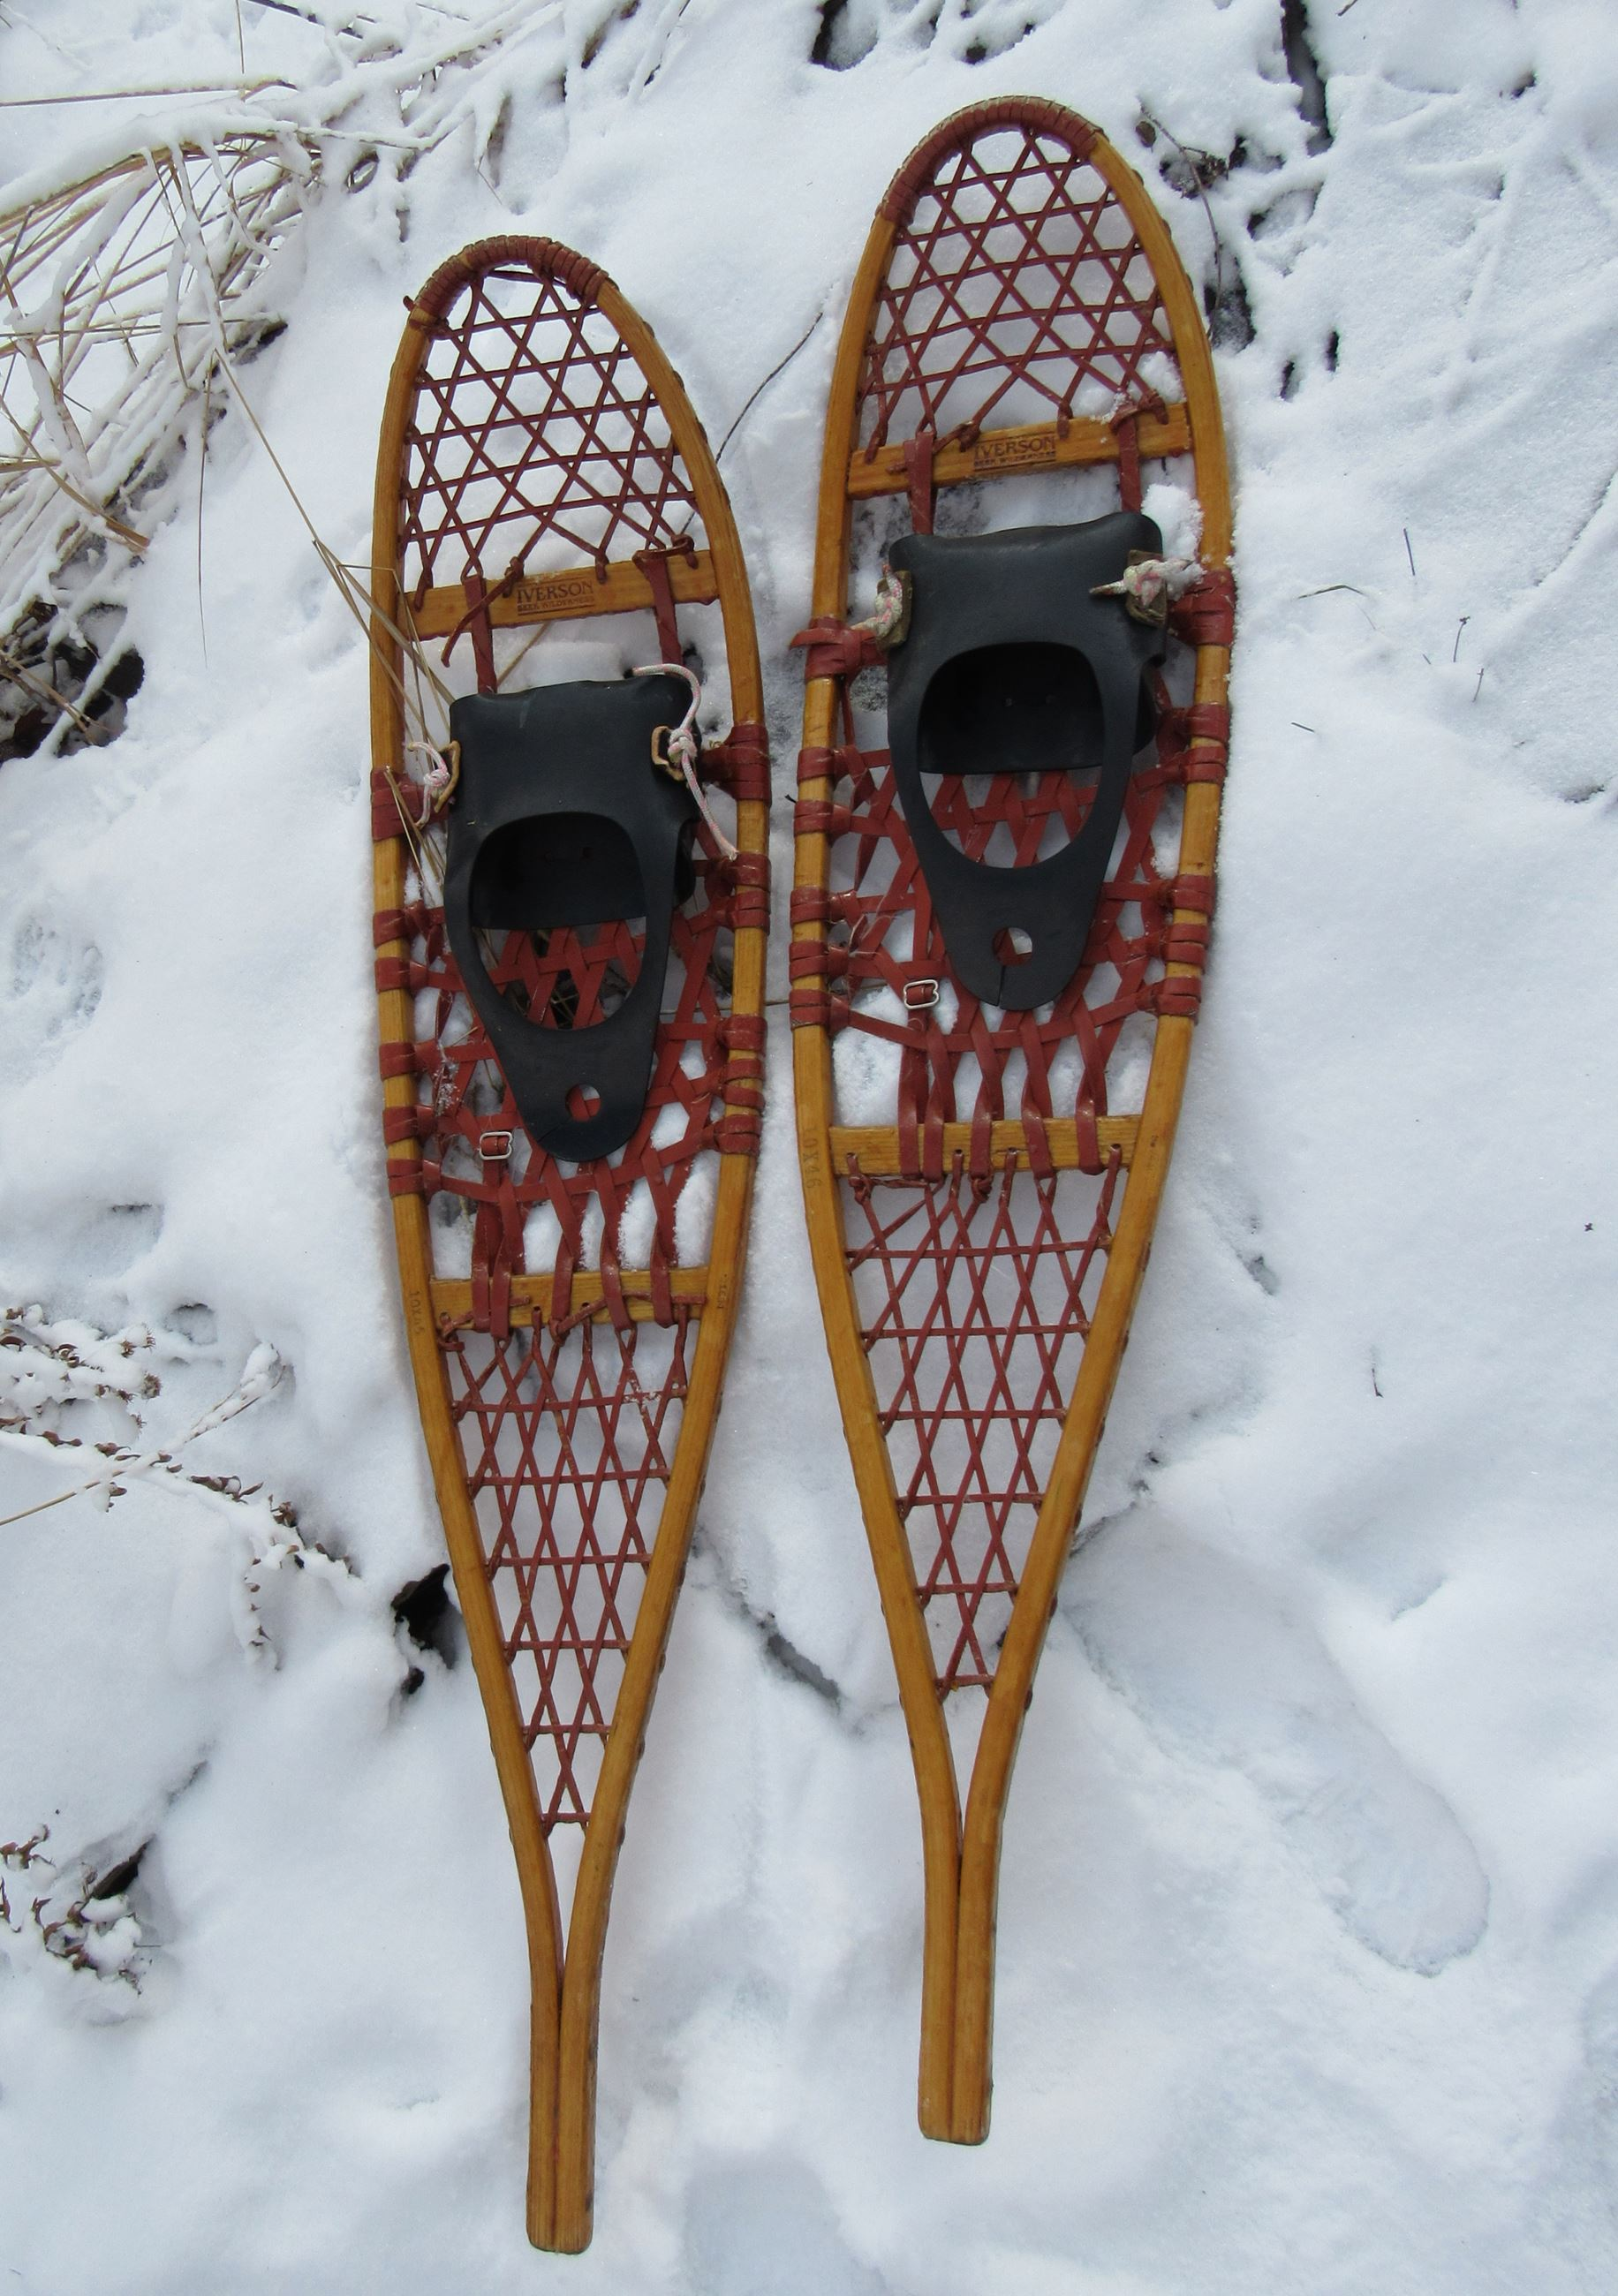 A pair of traditional snowshoes